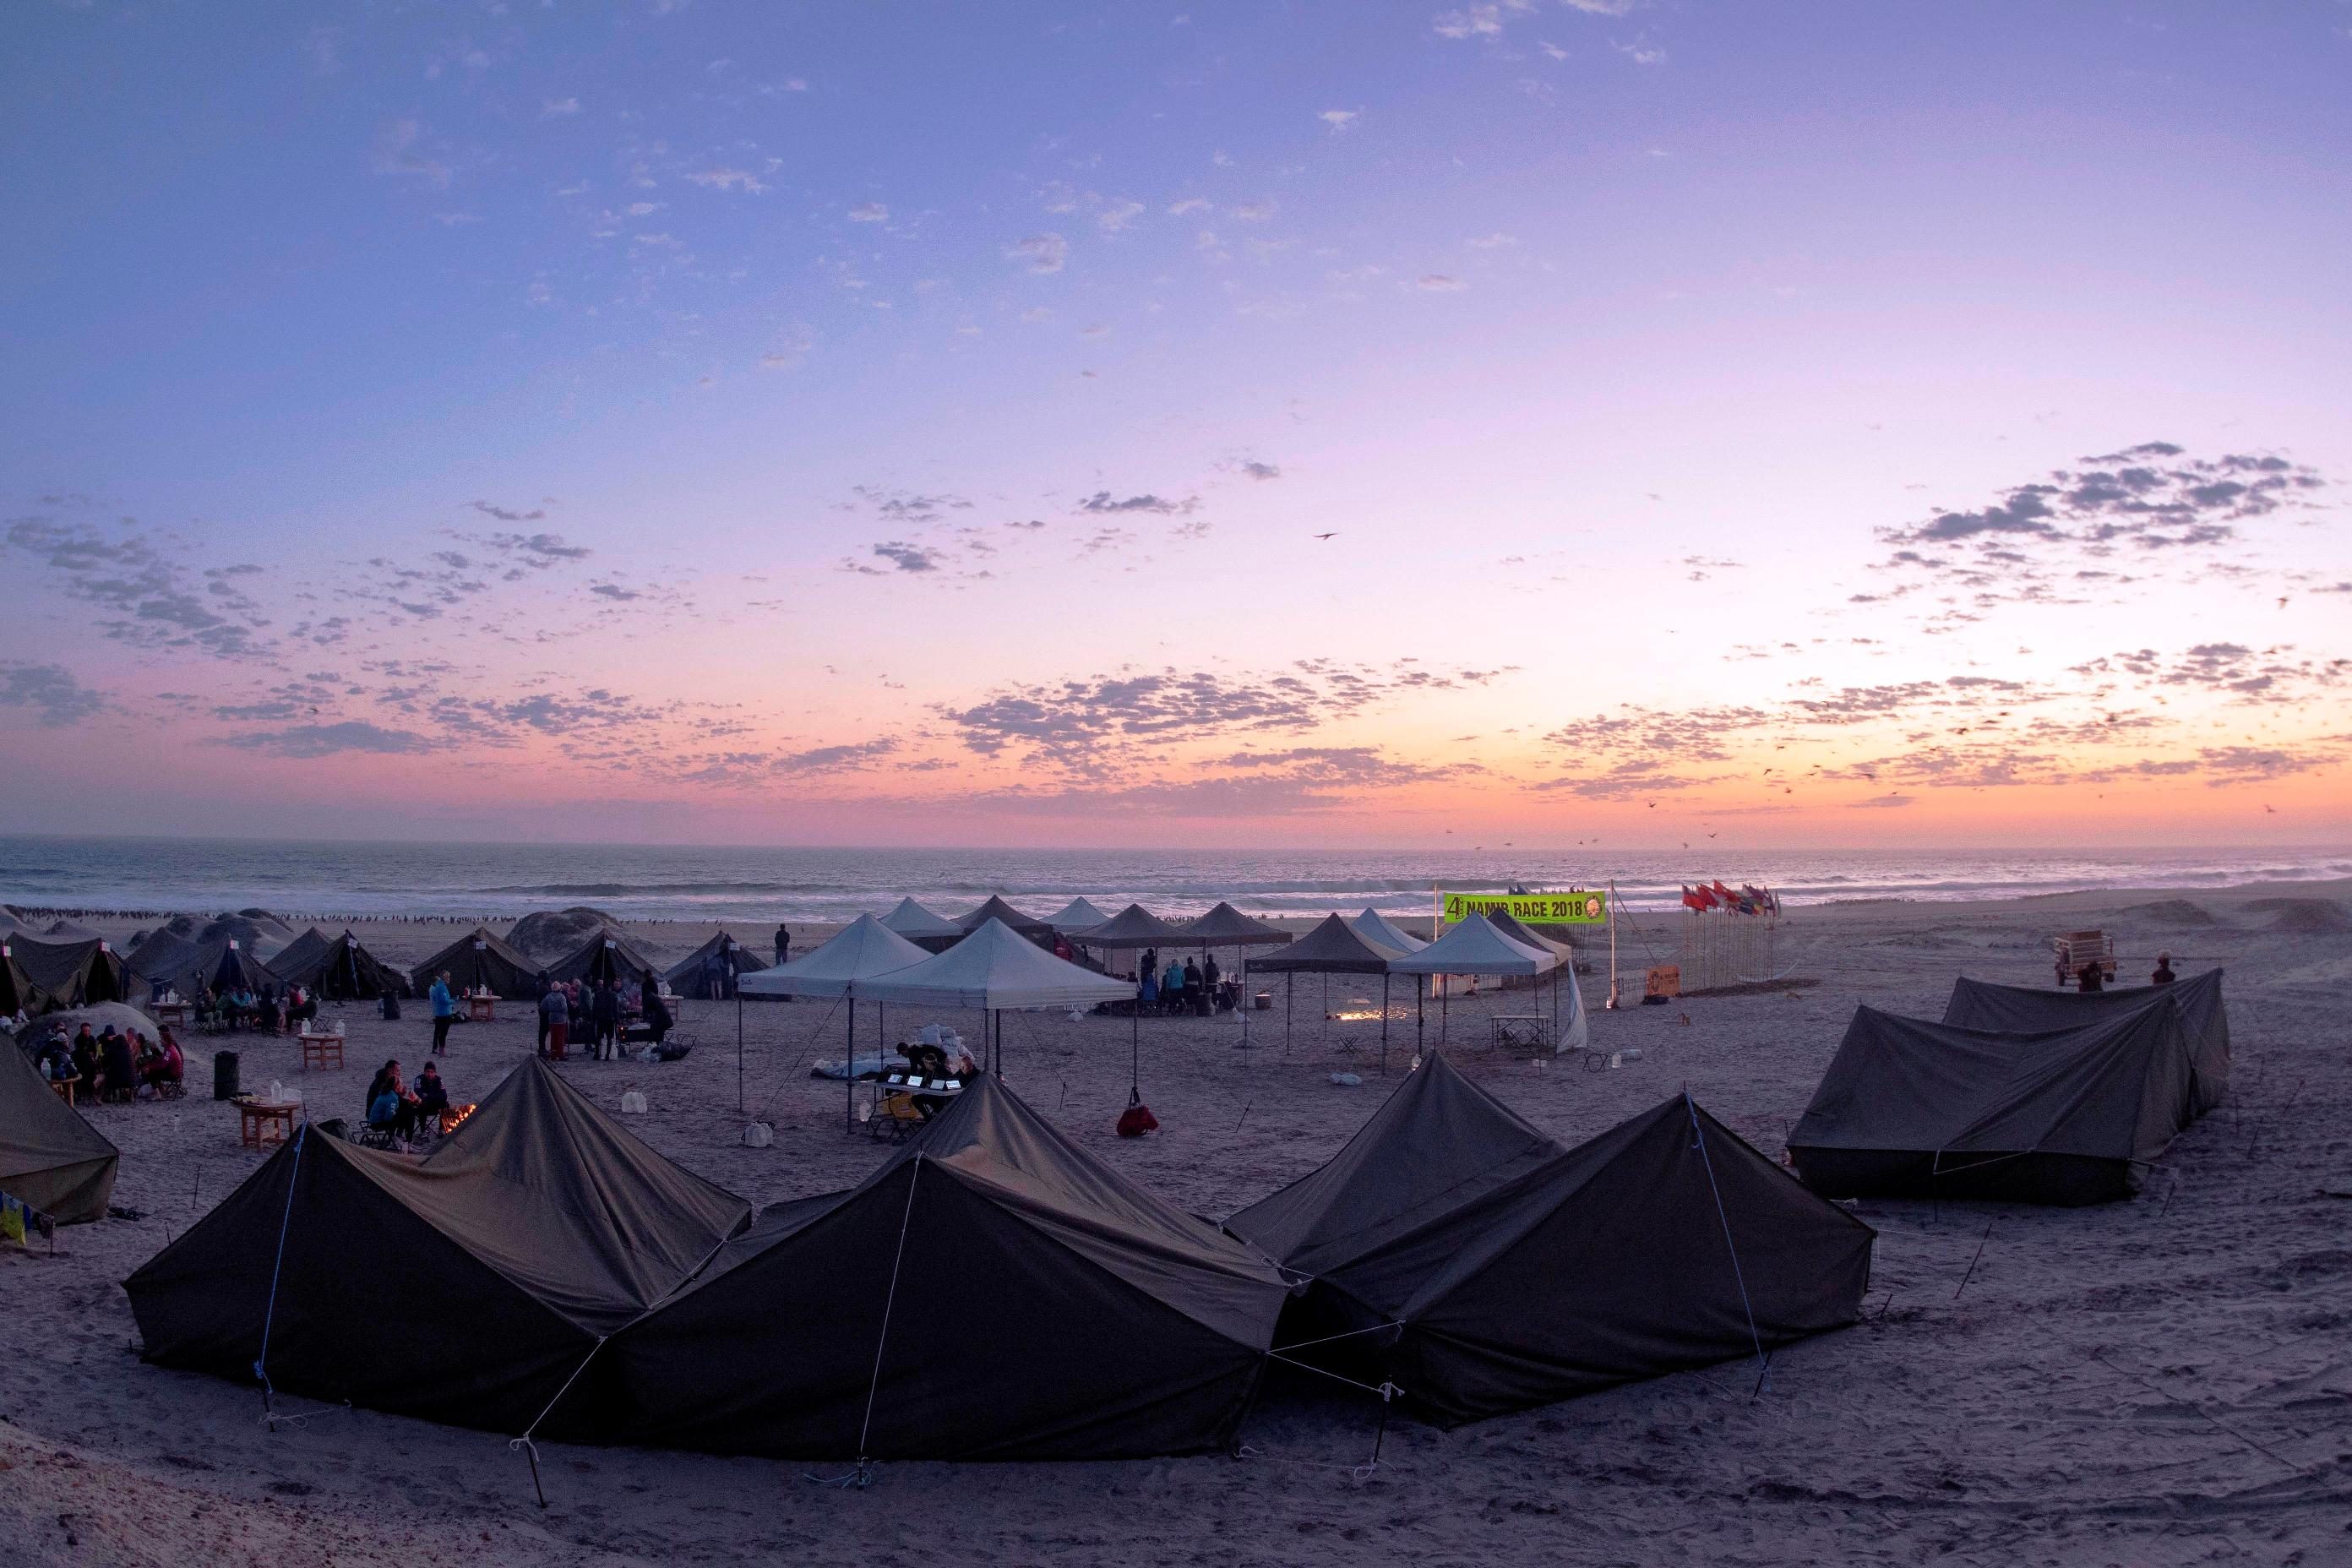 African Camp in the Namib Race